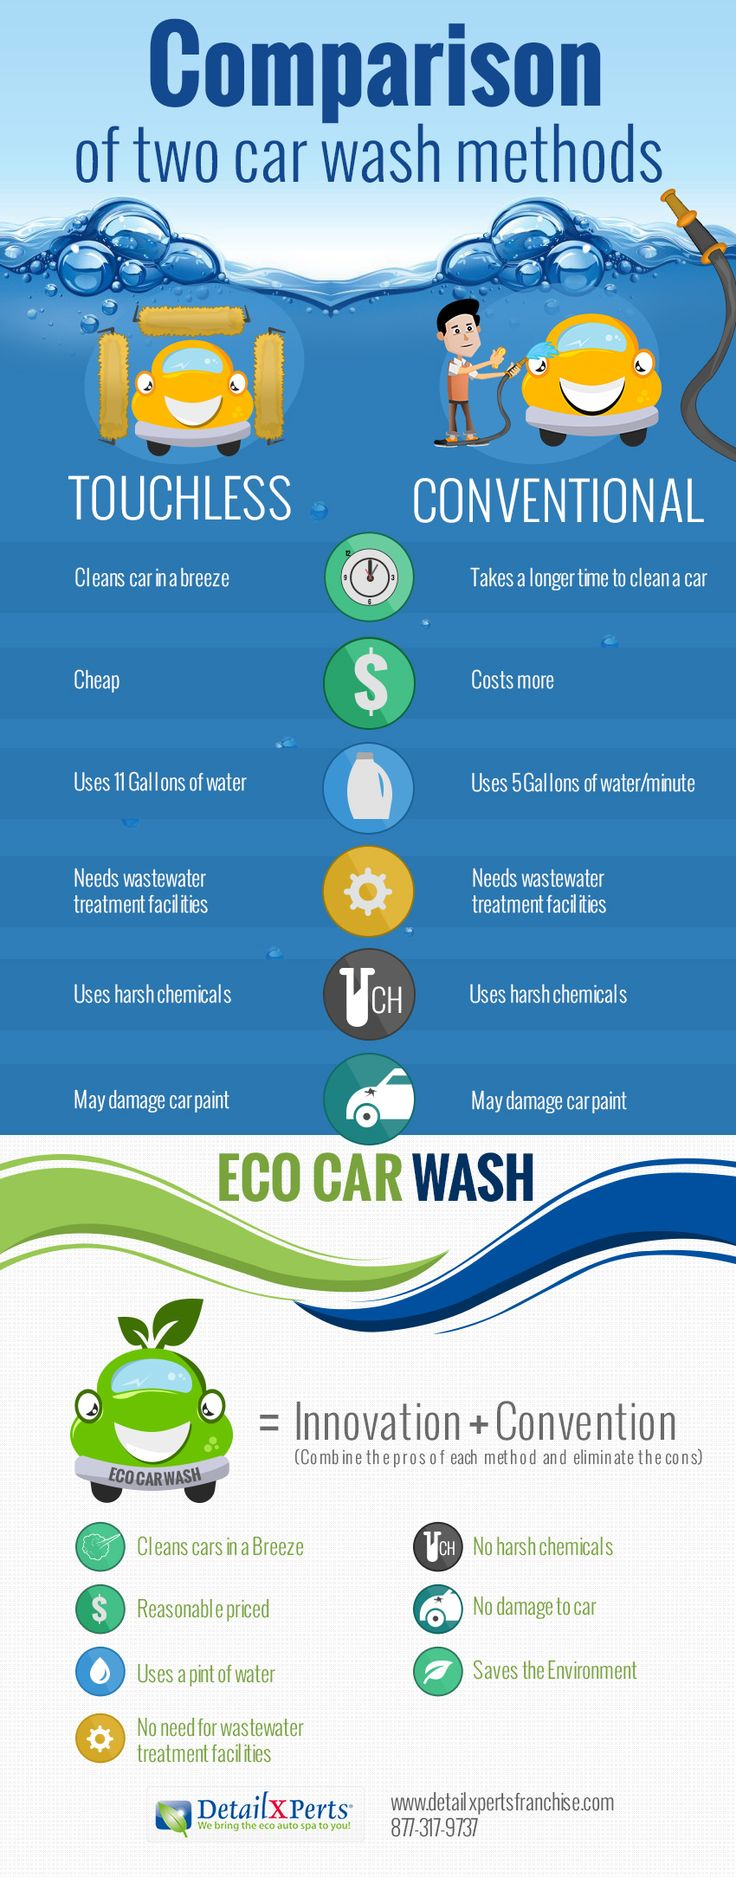 Eco friendly car wash innovation convention infographic